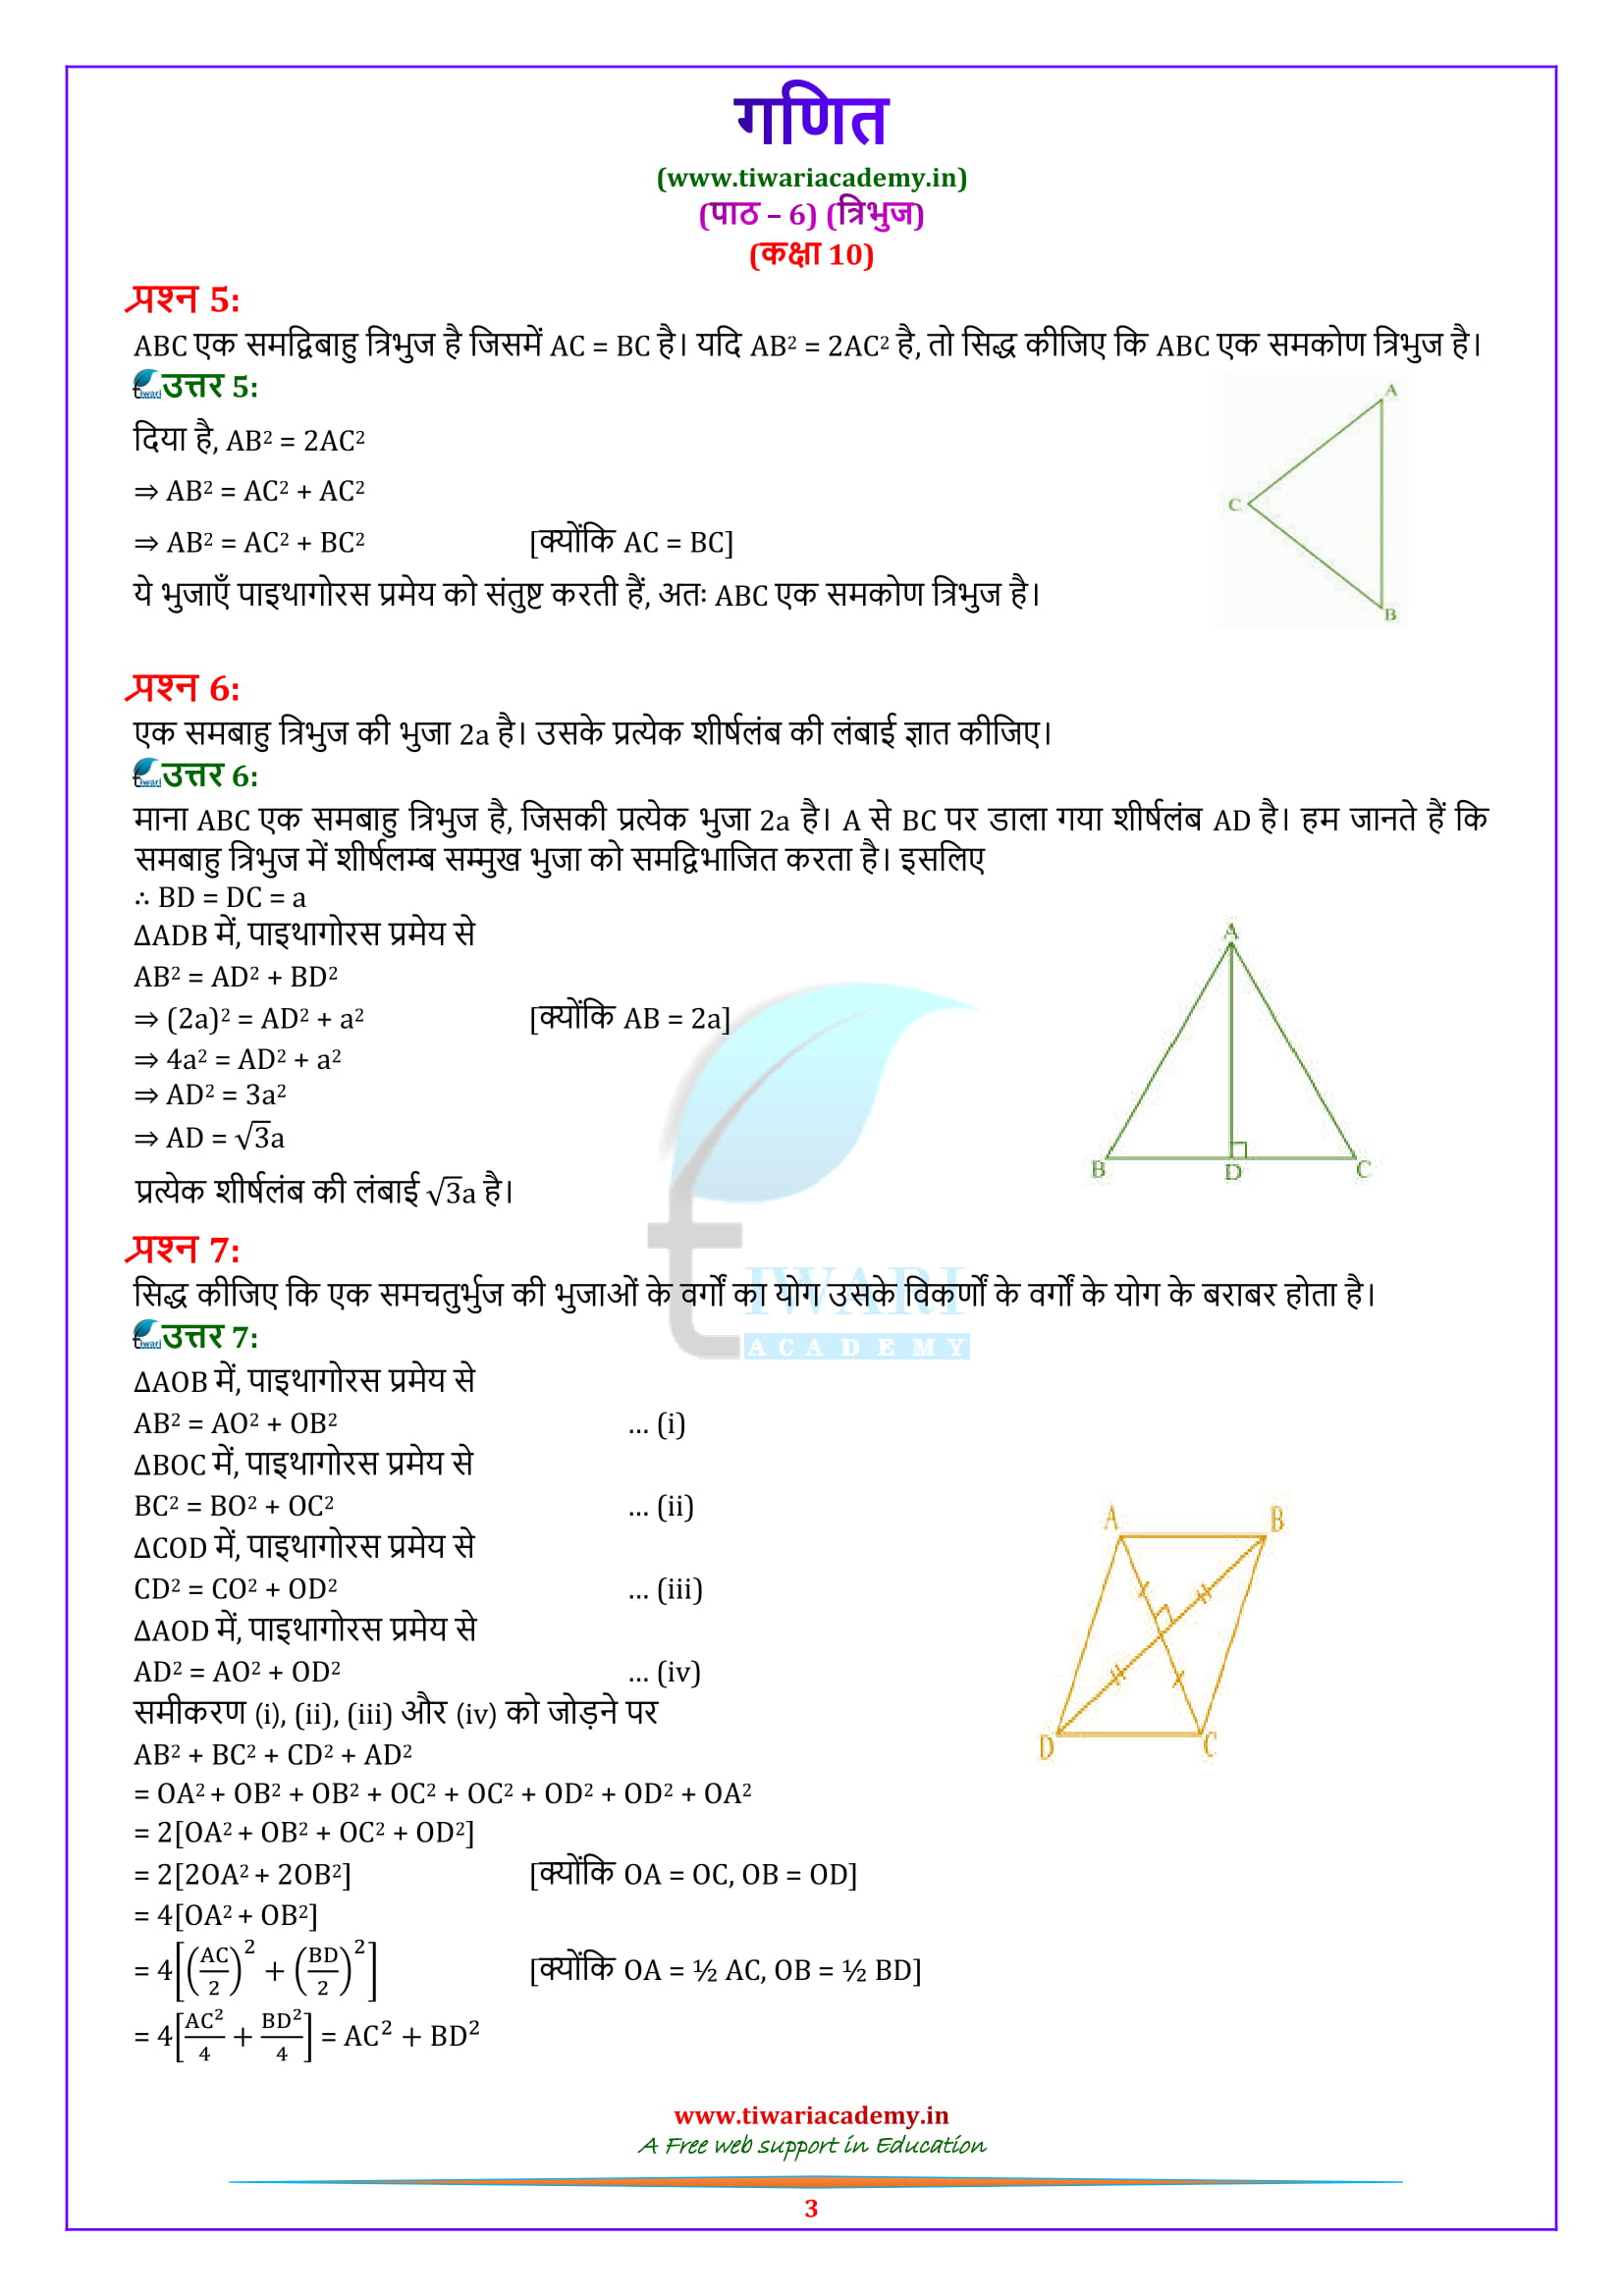 Class 10 Maths Exercise 6.5 Solutions for up board high school